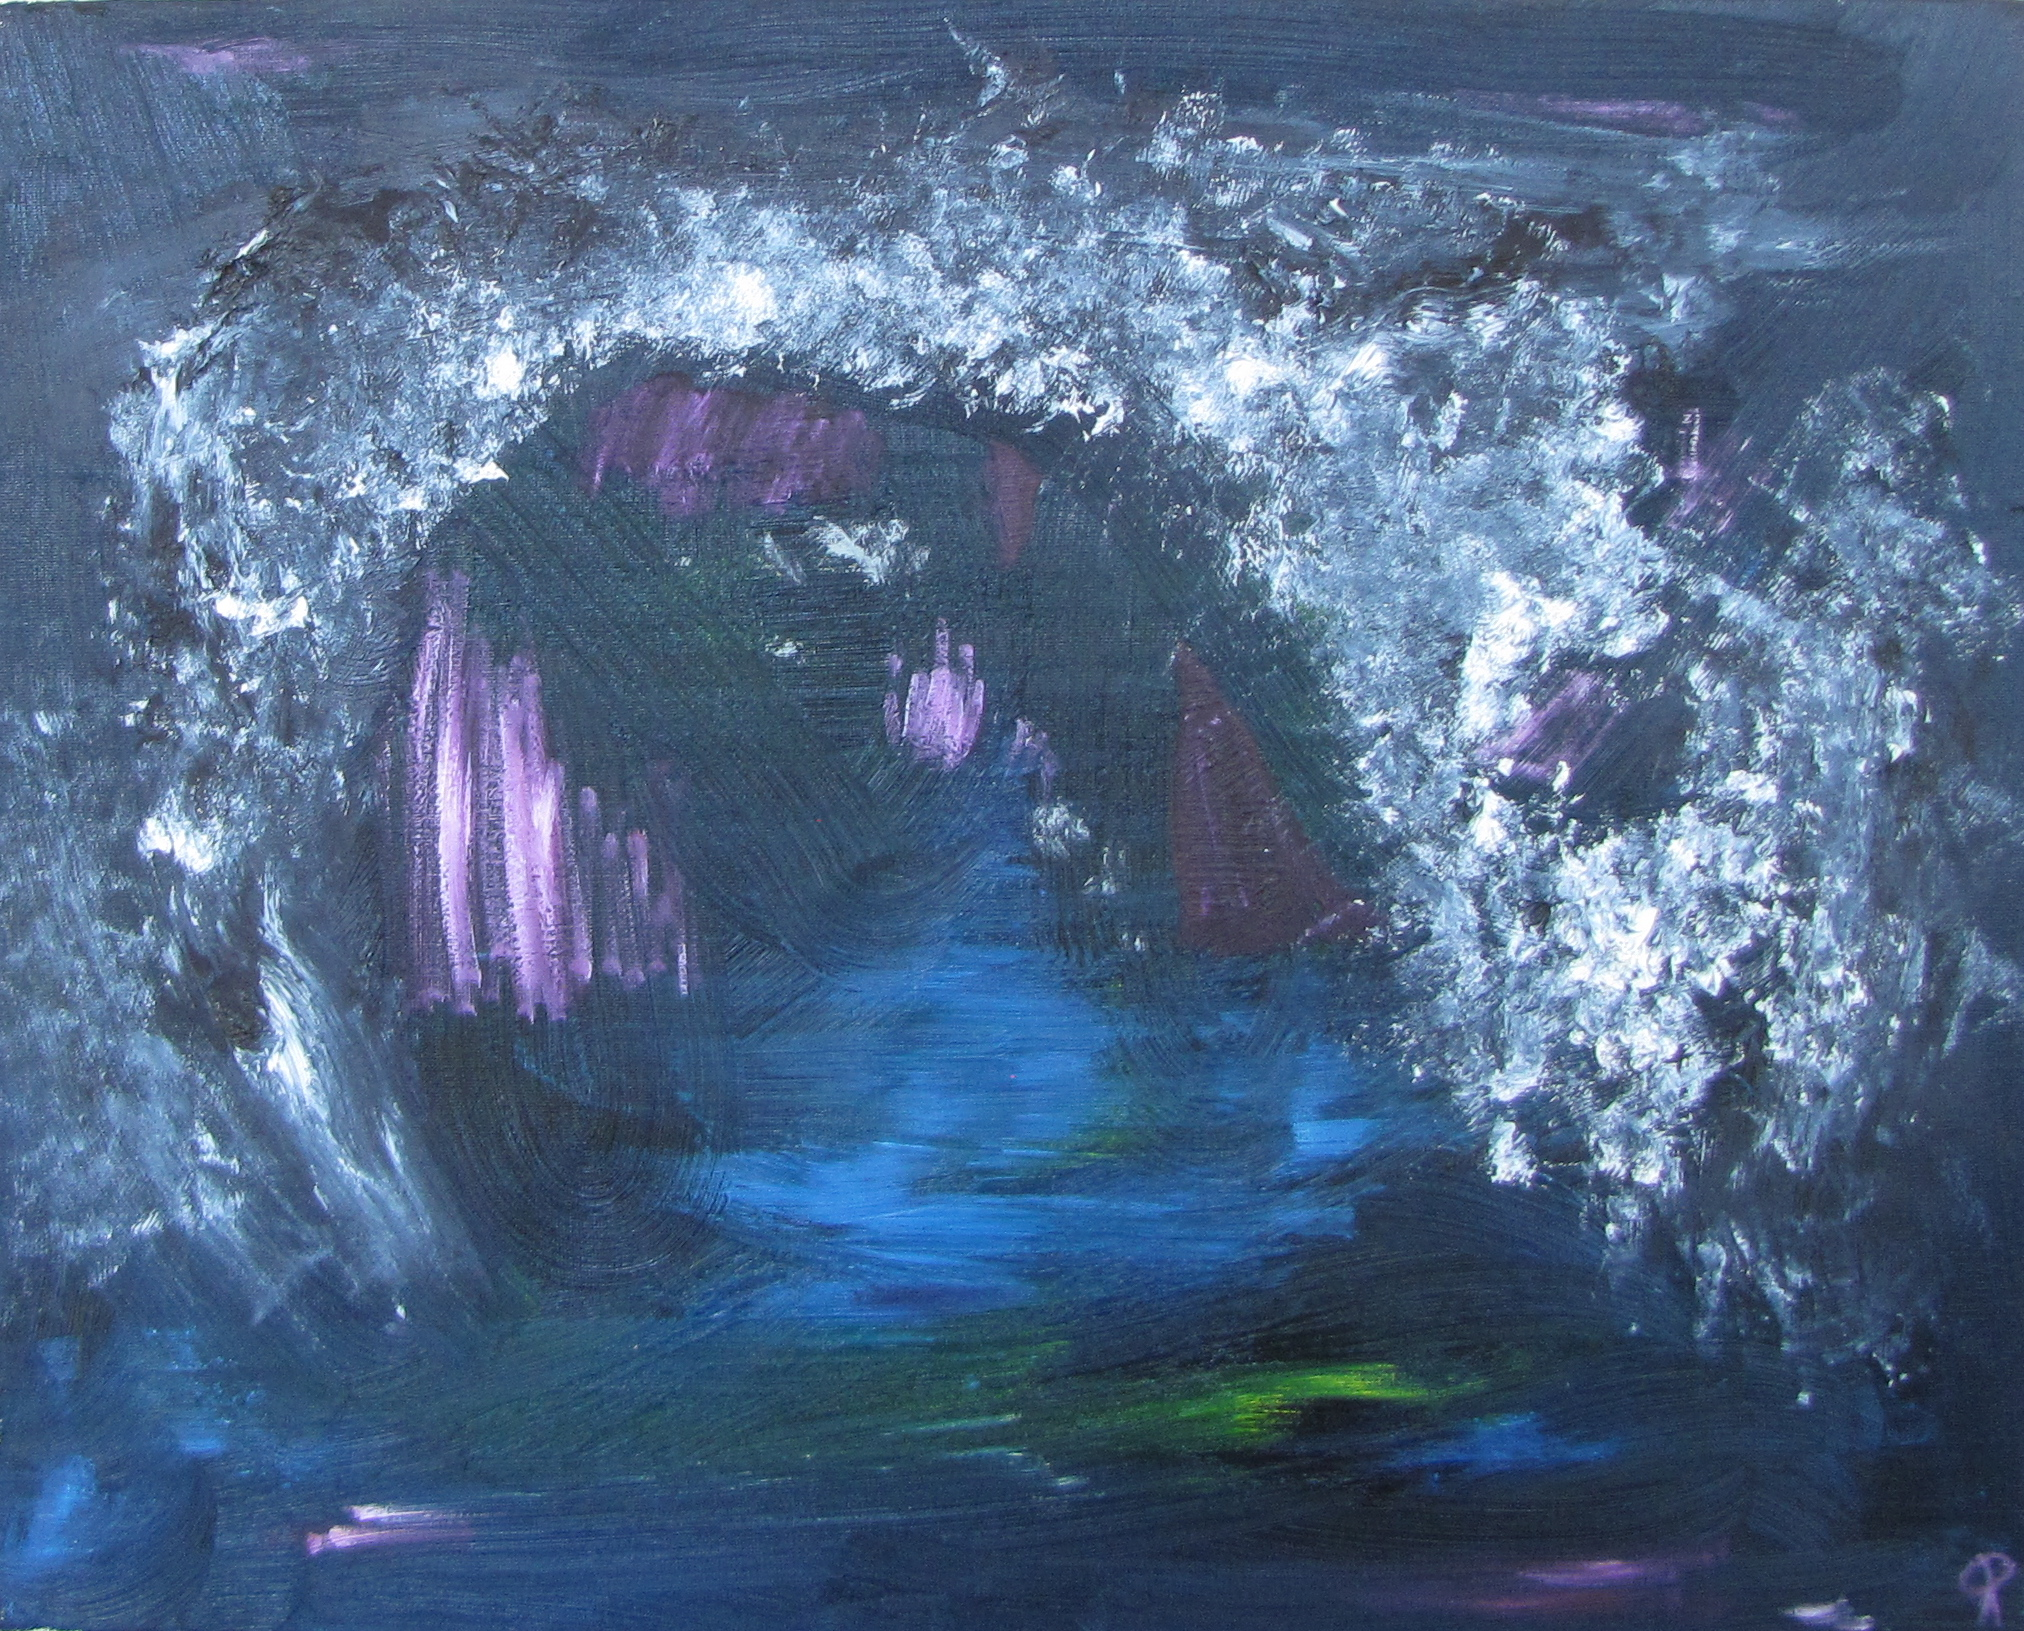 Underwater Lair, Russell Steven Powell oil on canvas, 20x16